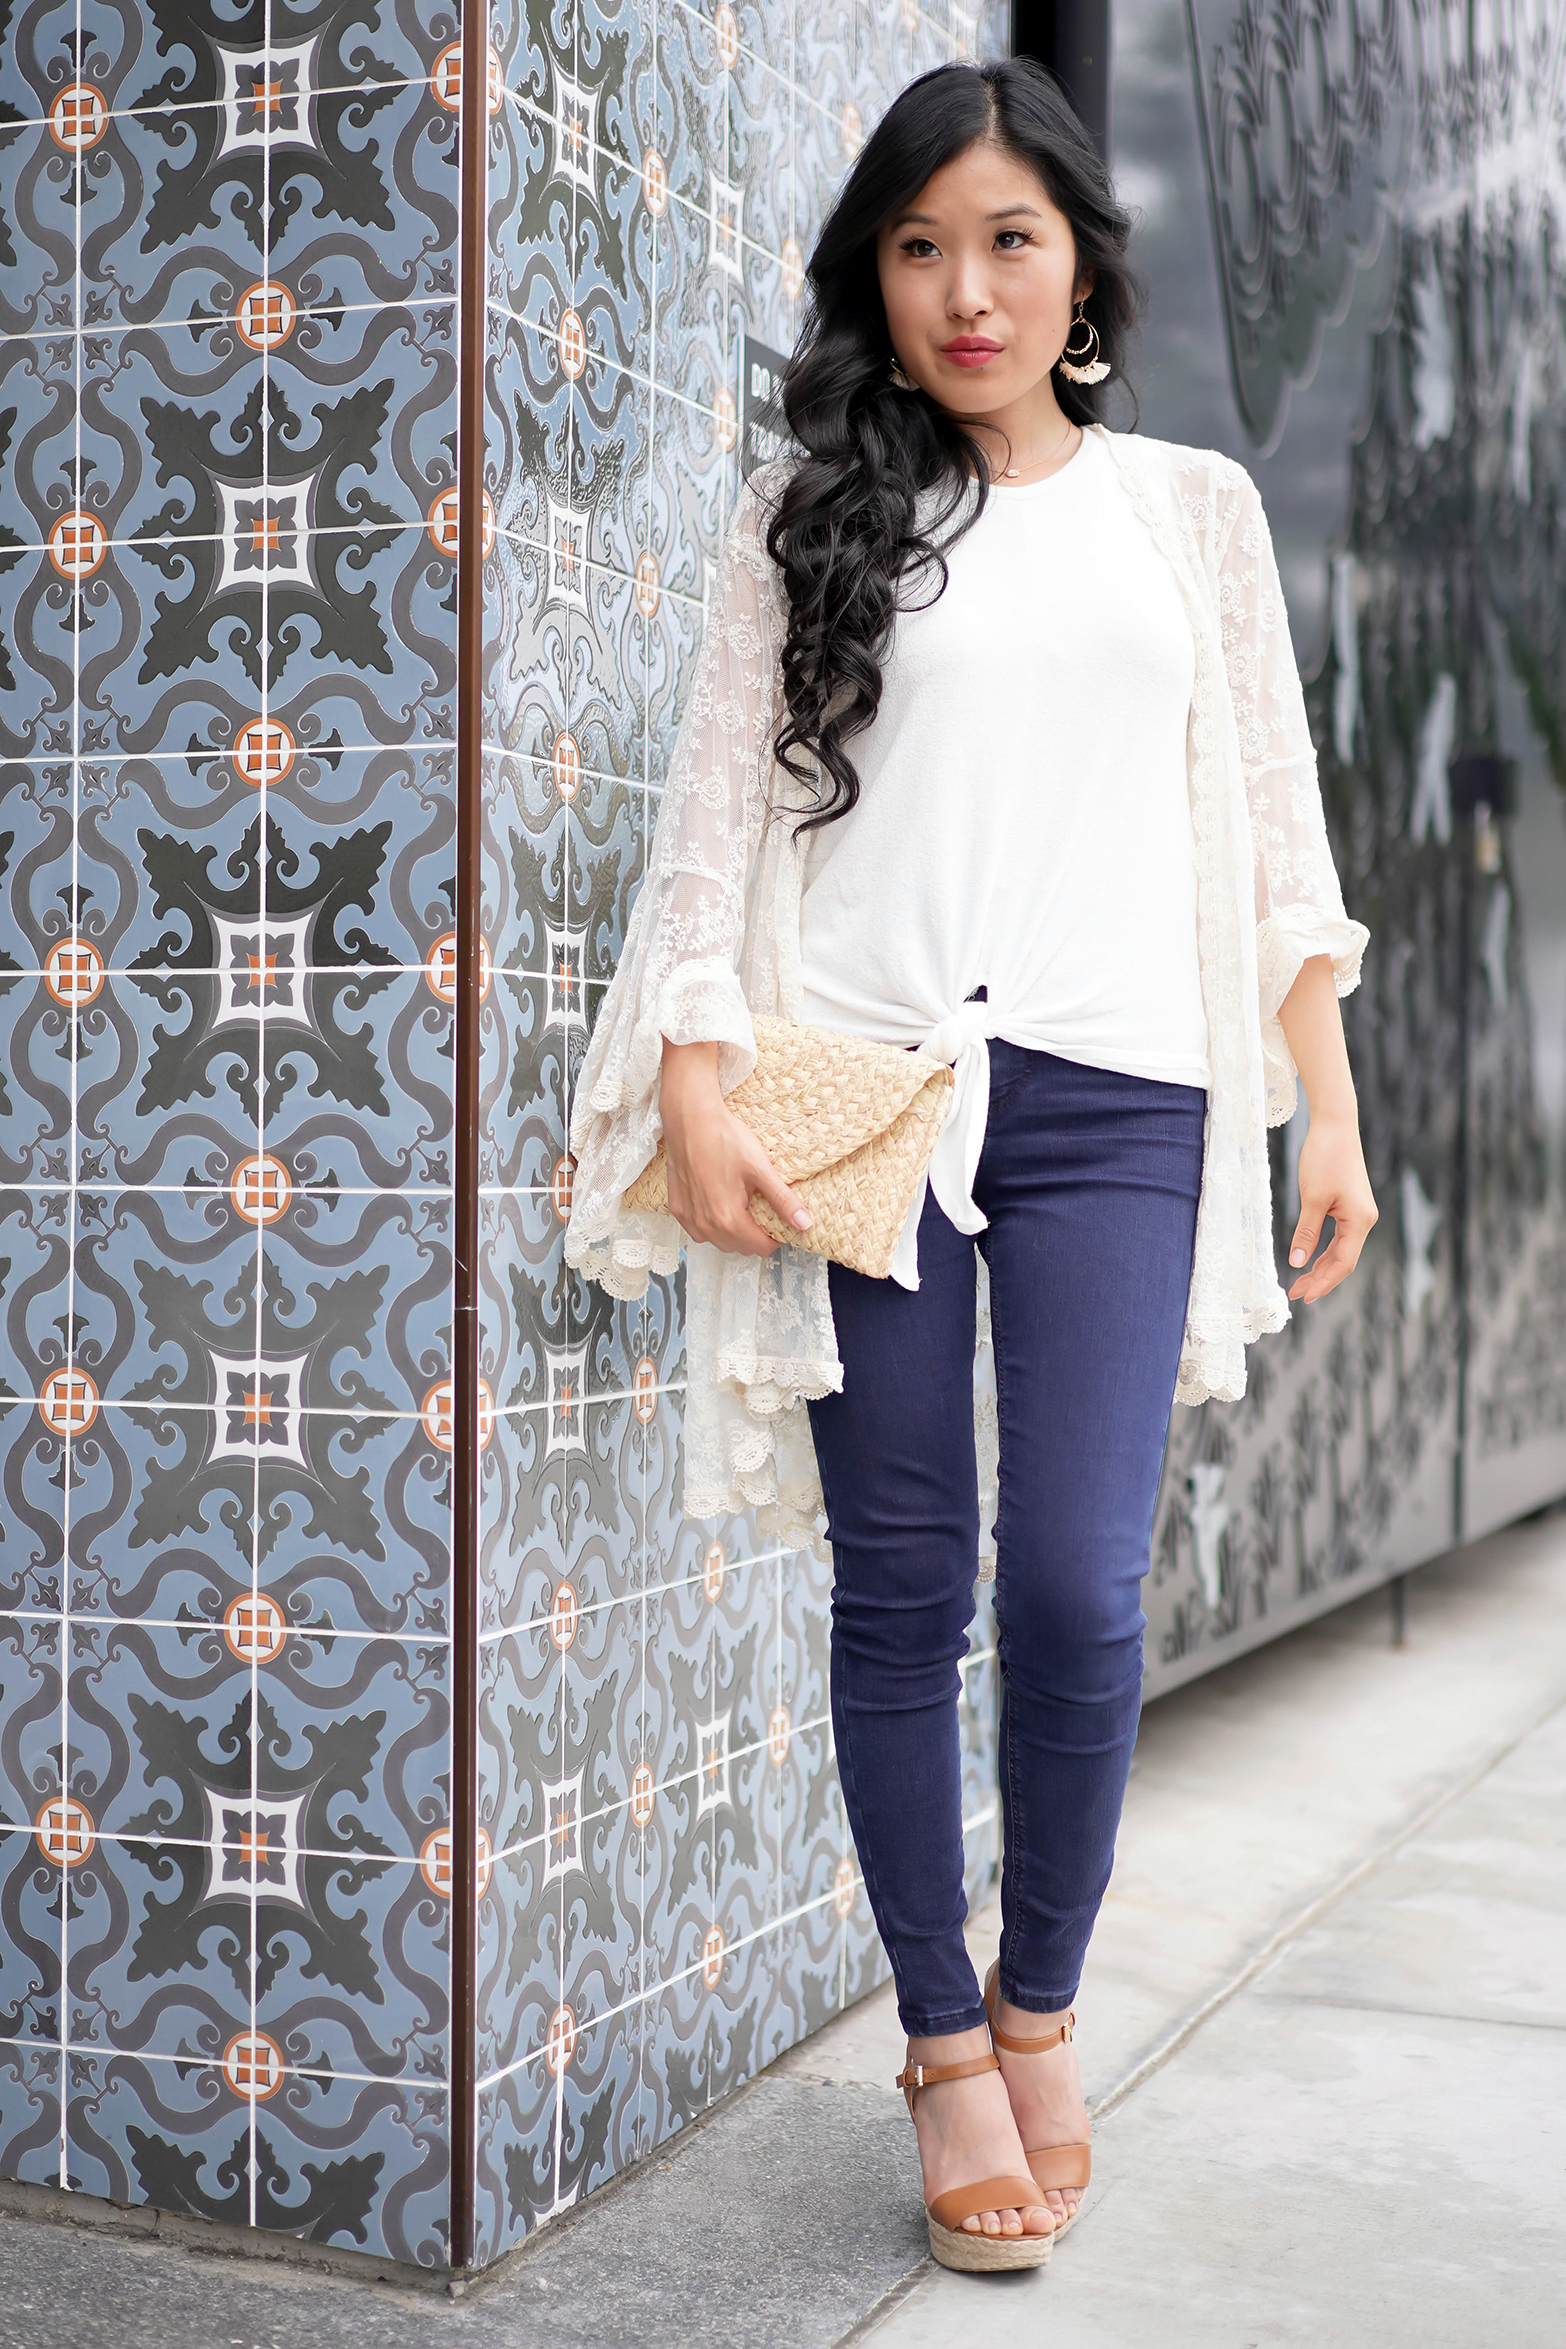 Francesca's Iris Bell Sleeved Lace Cardigan, Straw Clutch Target Universal Thread, Talia Tassel Earrings, Cassie Tie Front White Tank Top